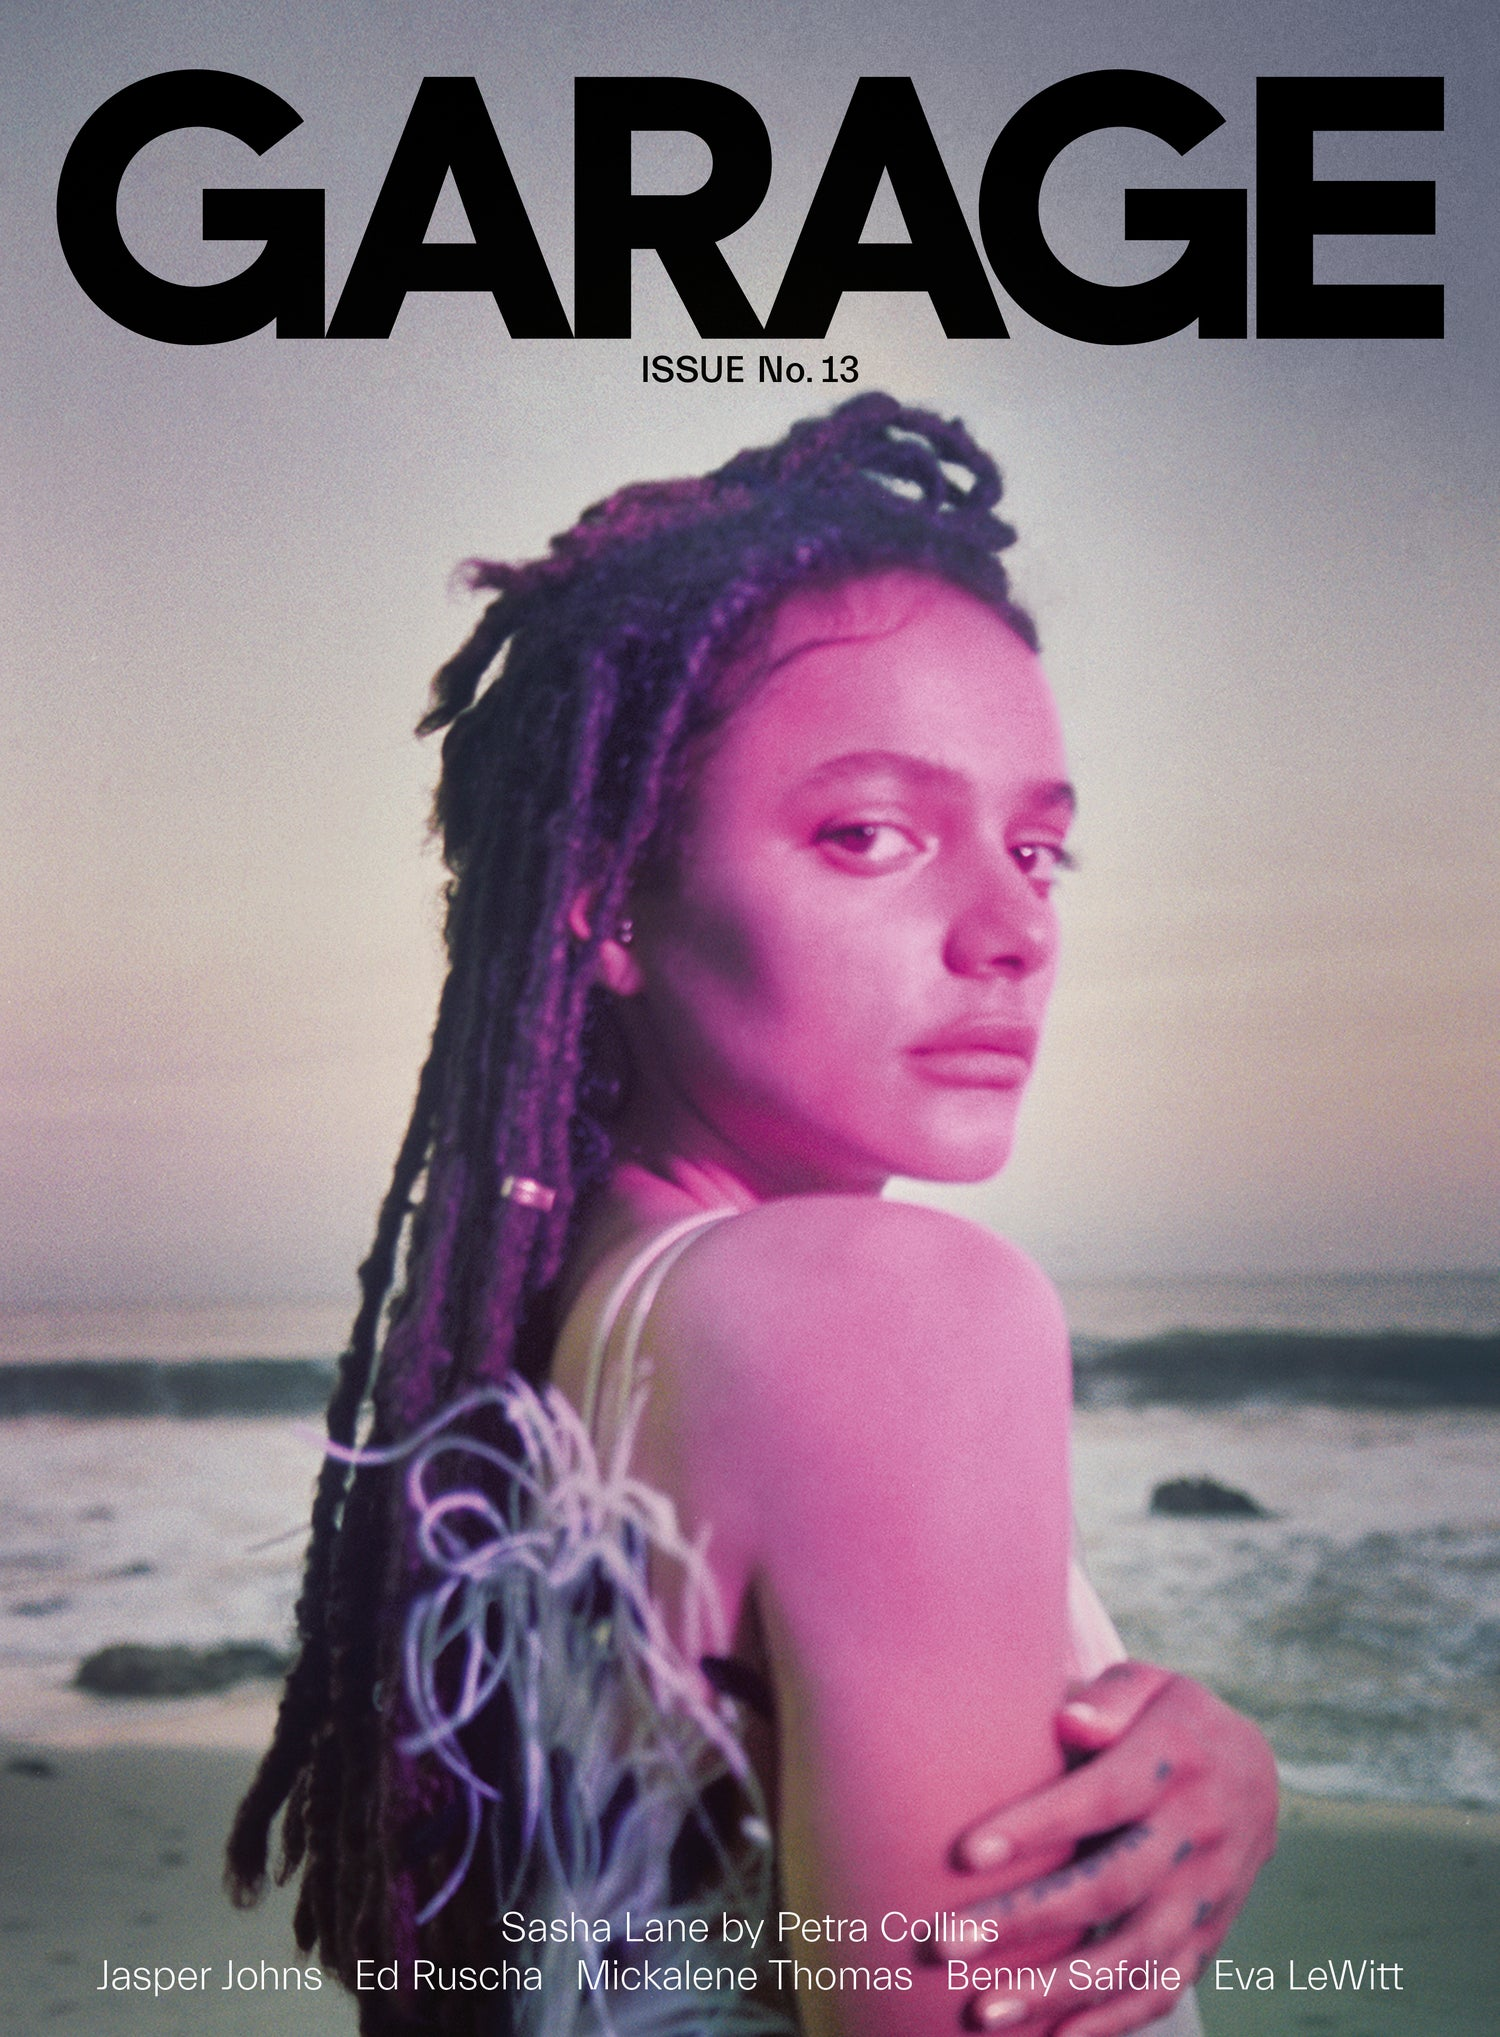 Image of GARAGE Magazine No. 13 - Sasha Lane by Petra Collins